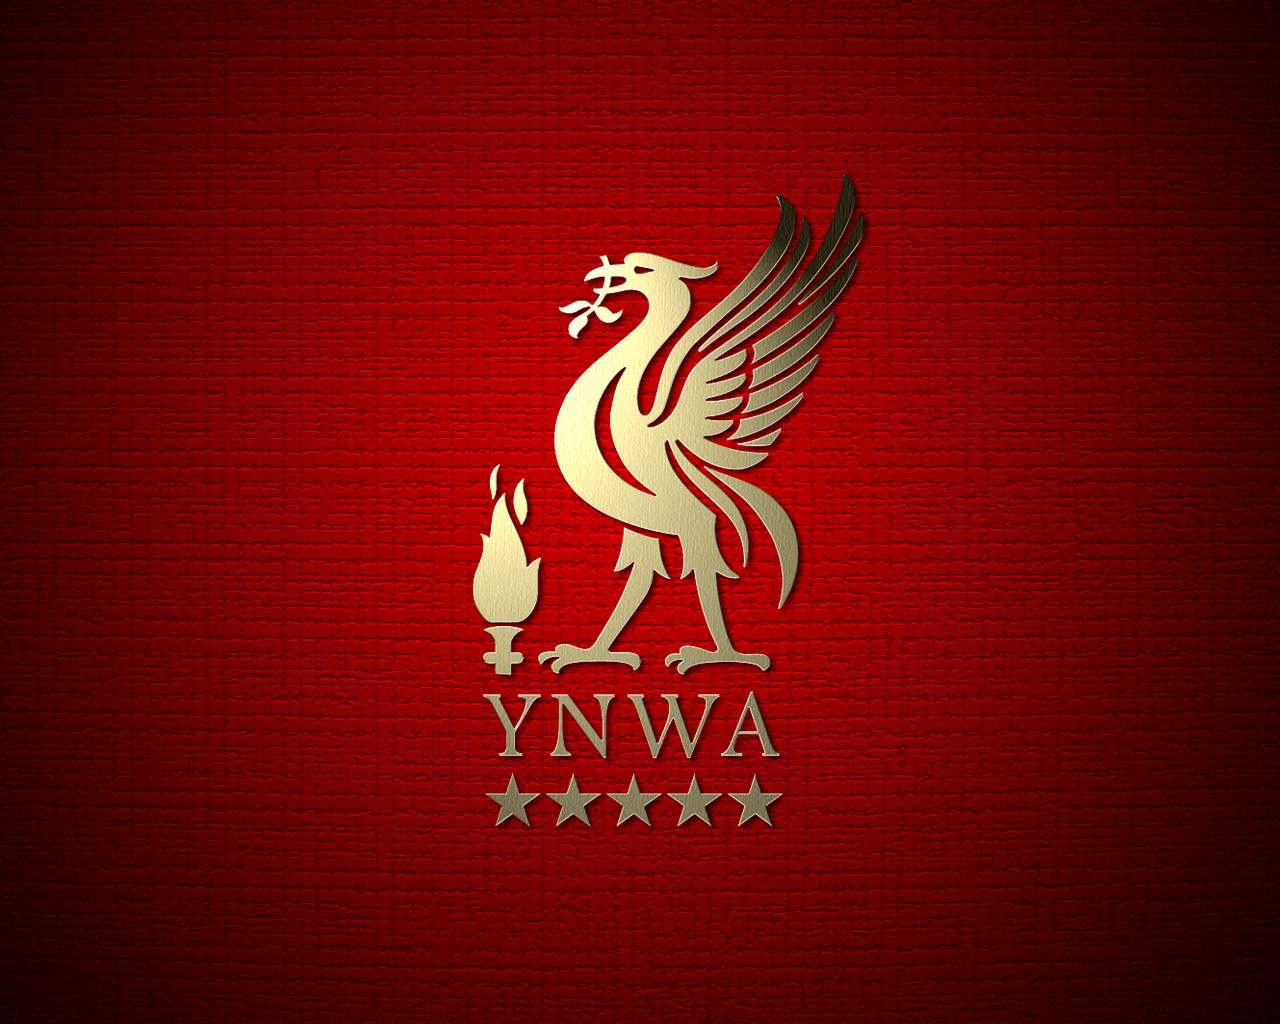 Liverpool logo  Interesting History of the Team Name and